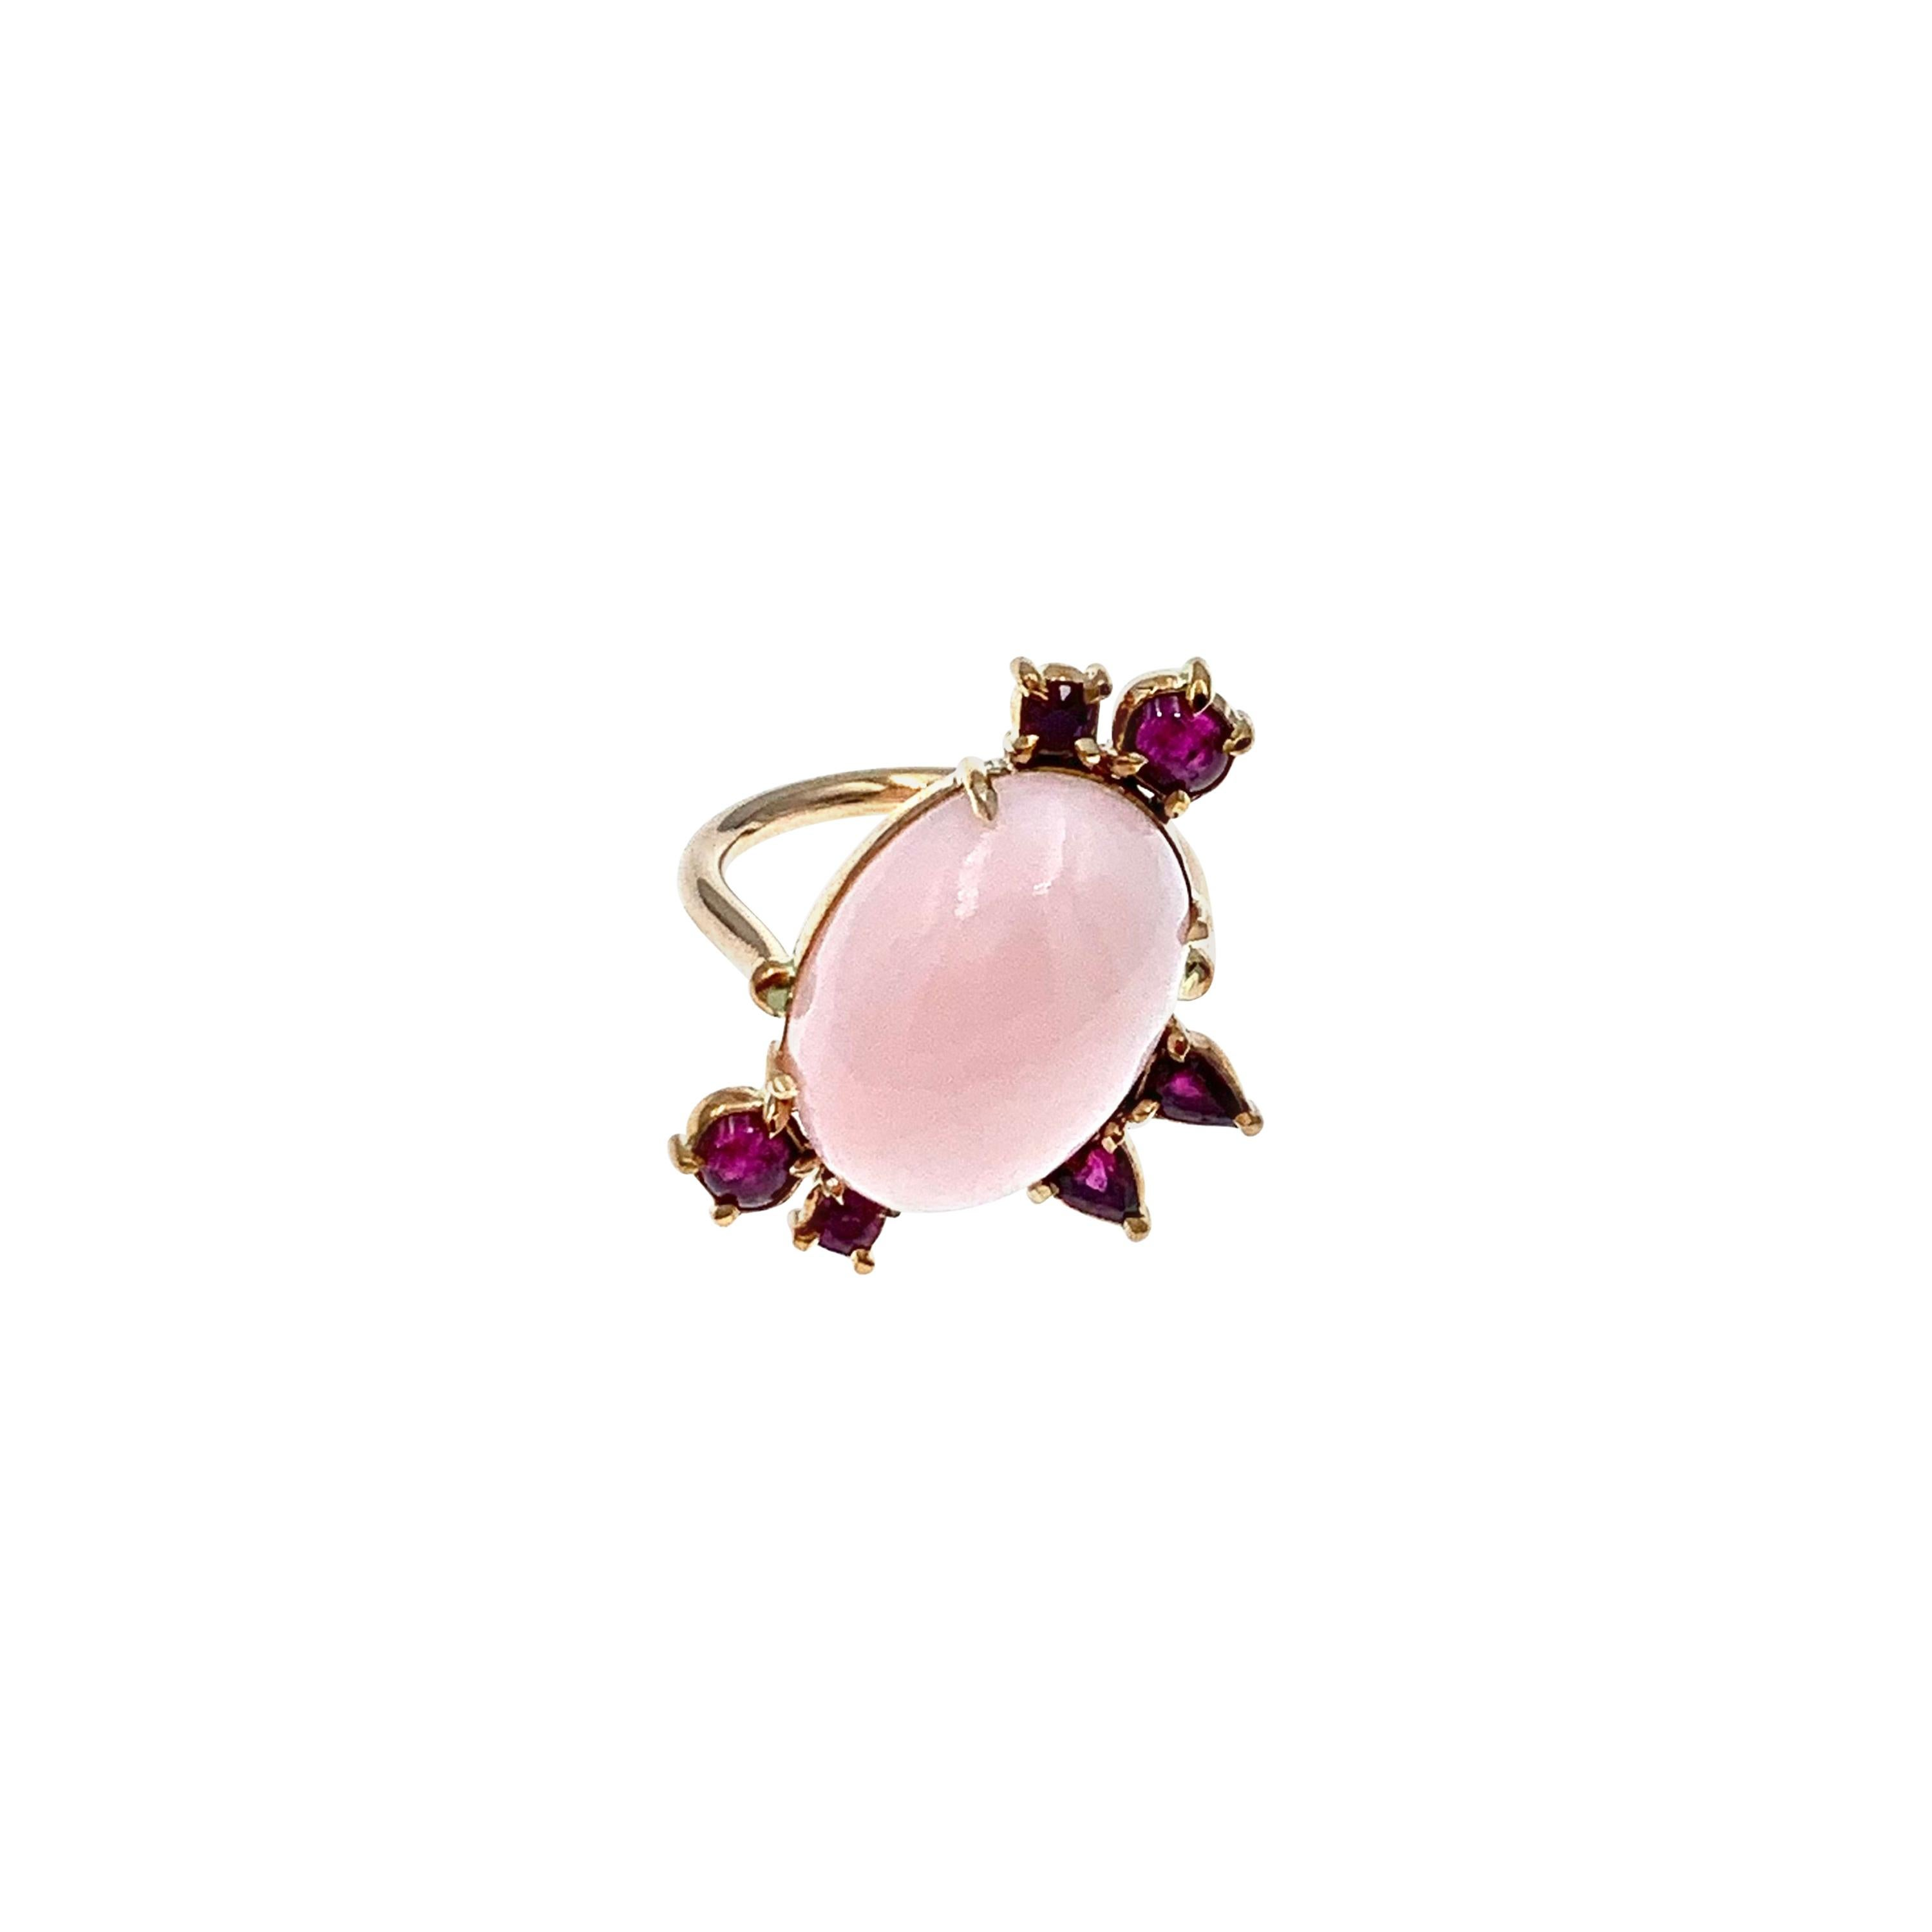 Oval Peruvian Pink Opal Cabochon with Ruby Accents Rose Gold Cocktail Ring